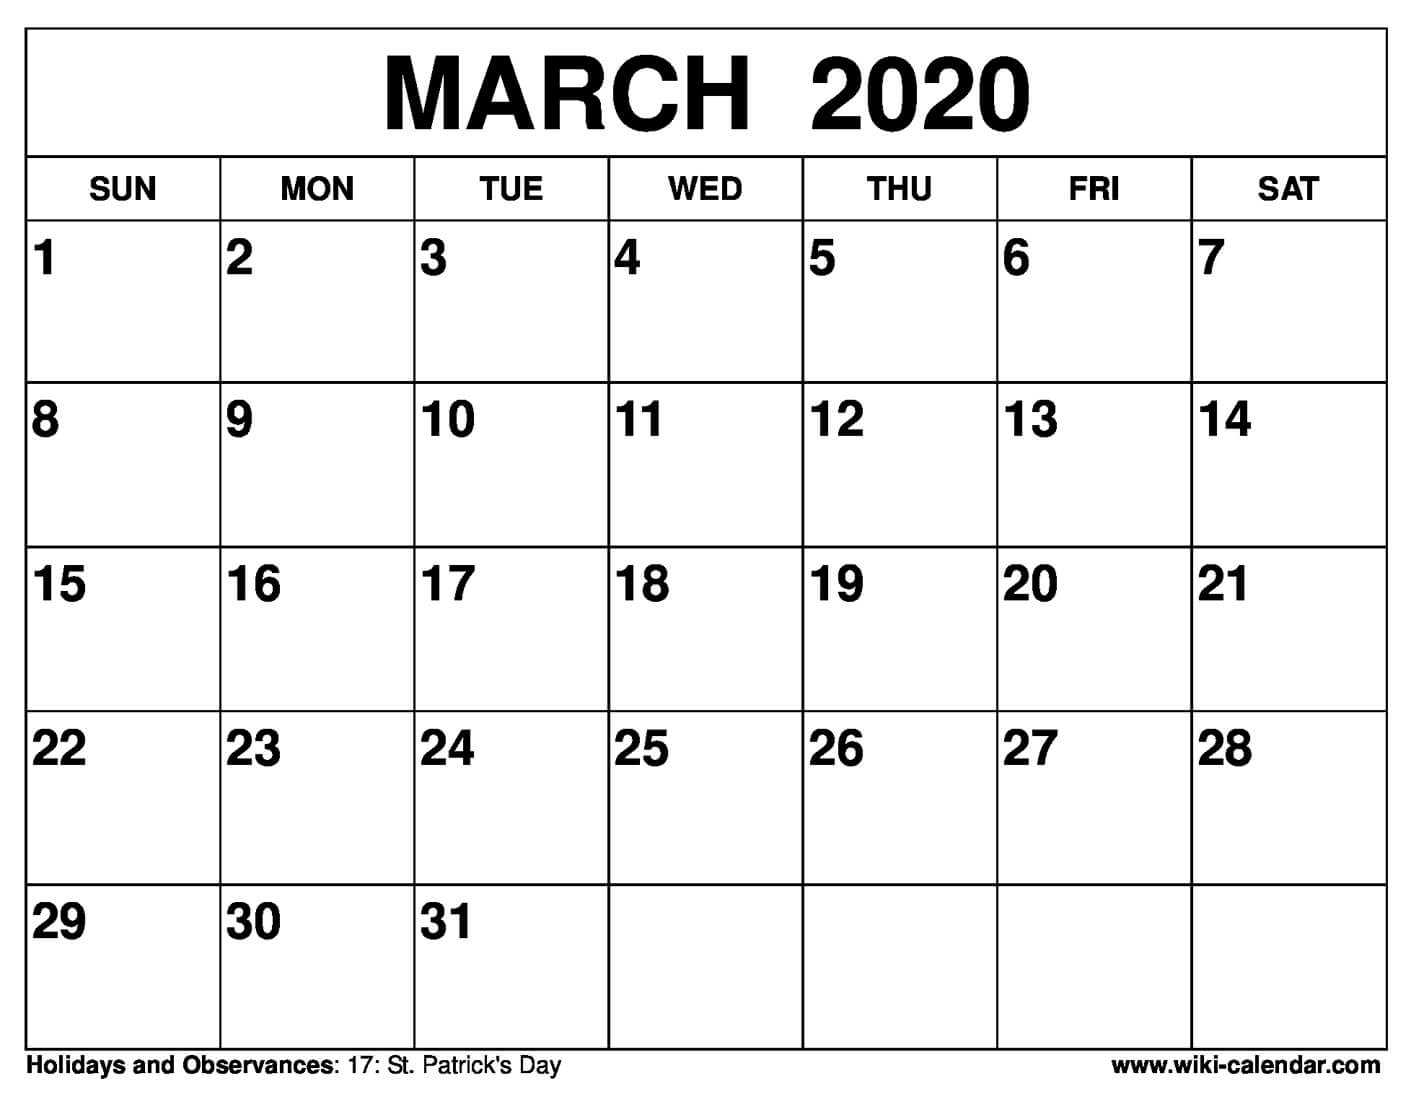 Calendars Michel Zbinden 2020 | Calendar For Planning for Michel Zbinden Calendar